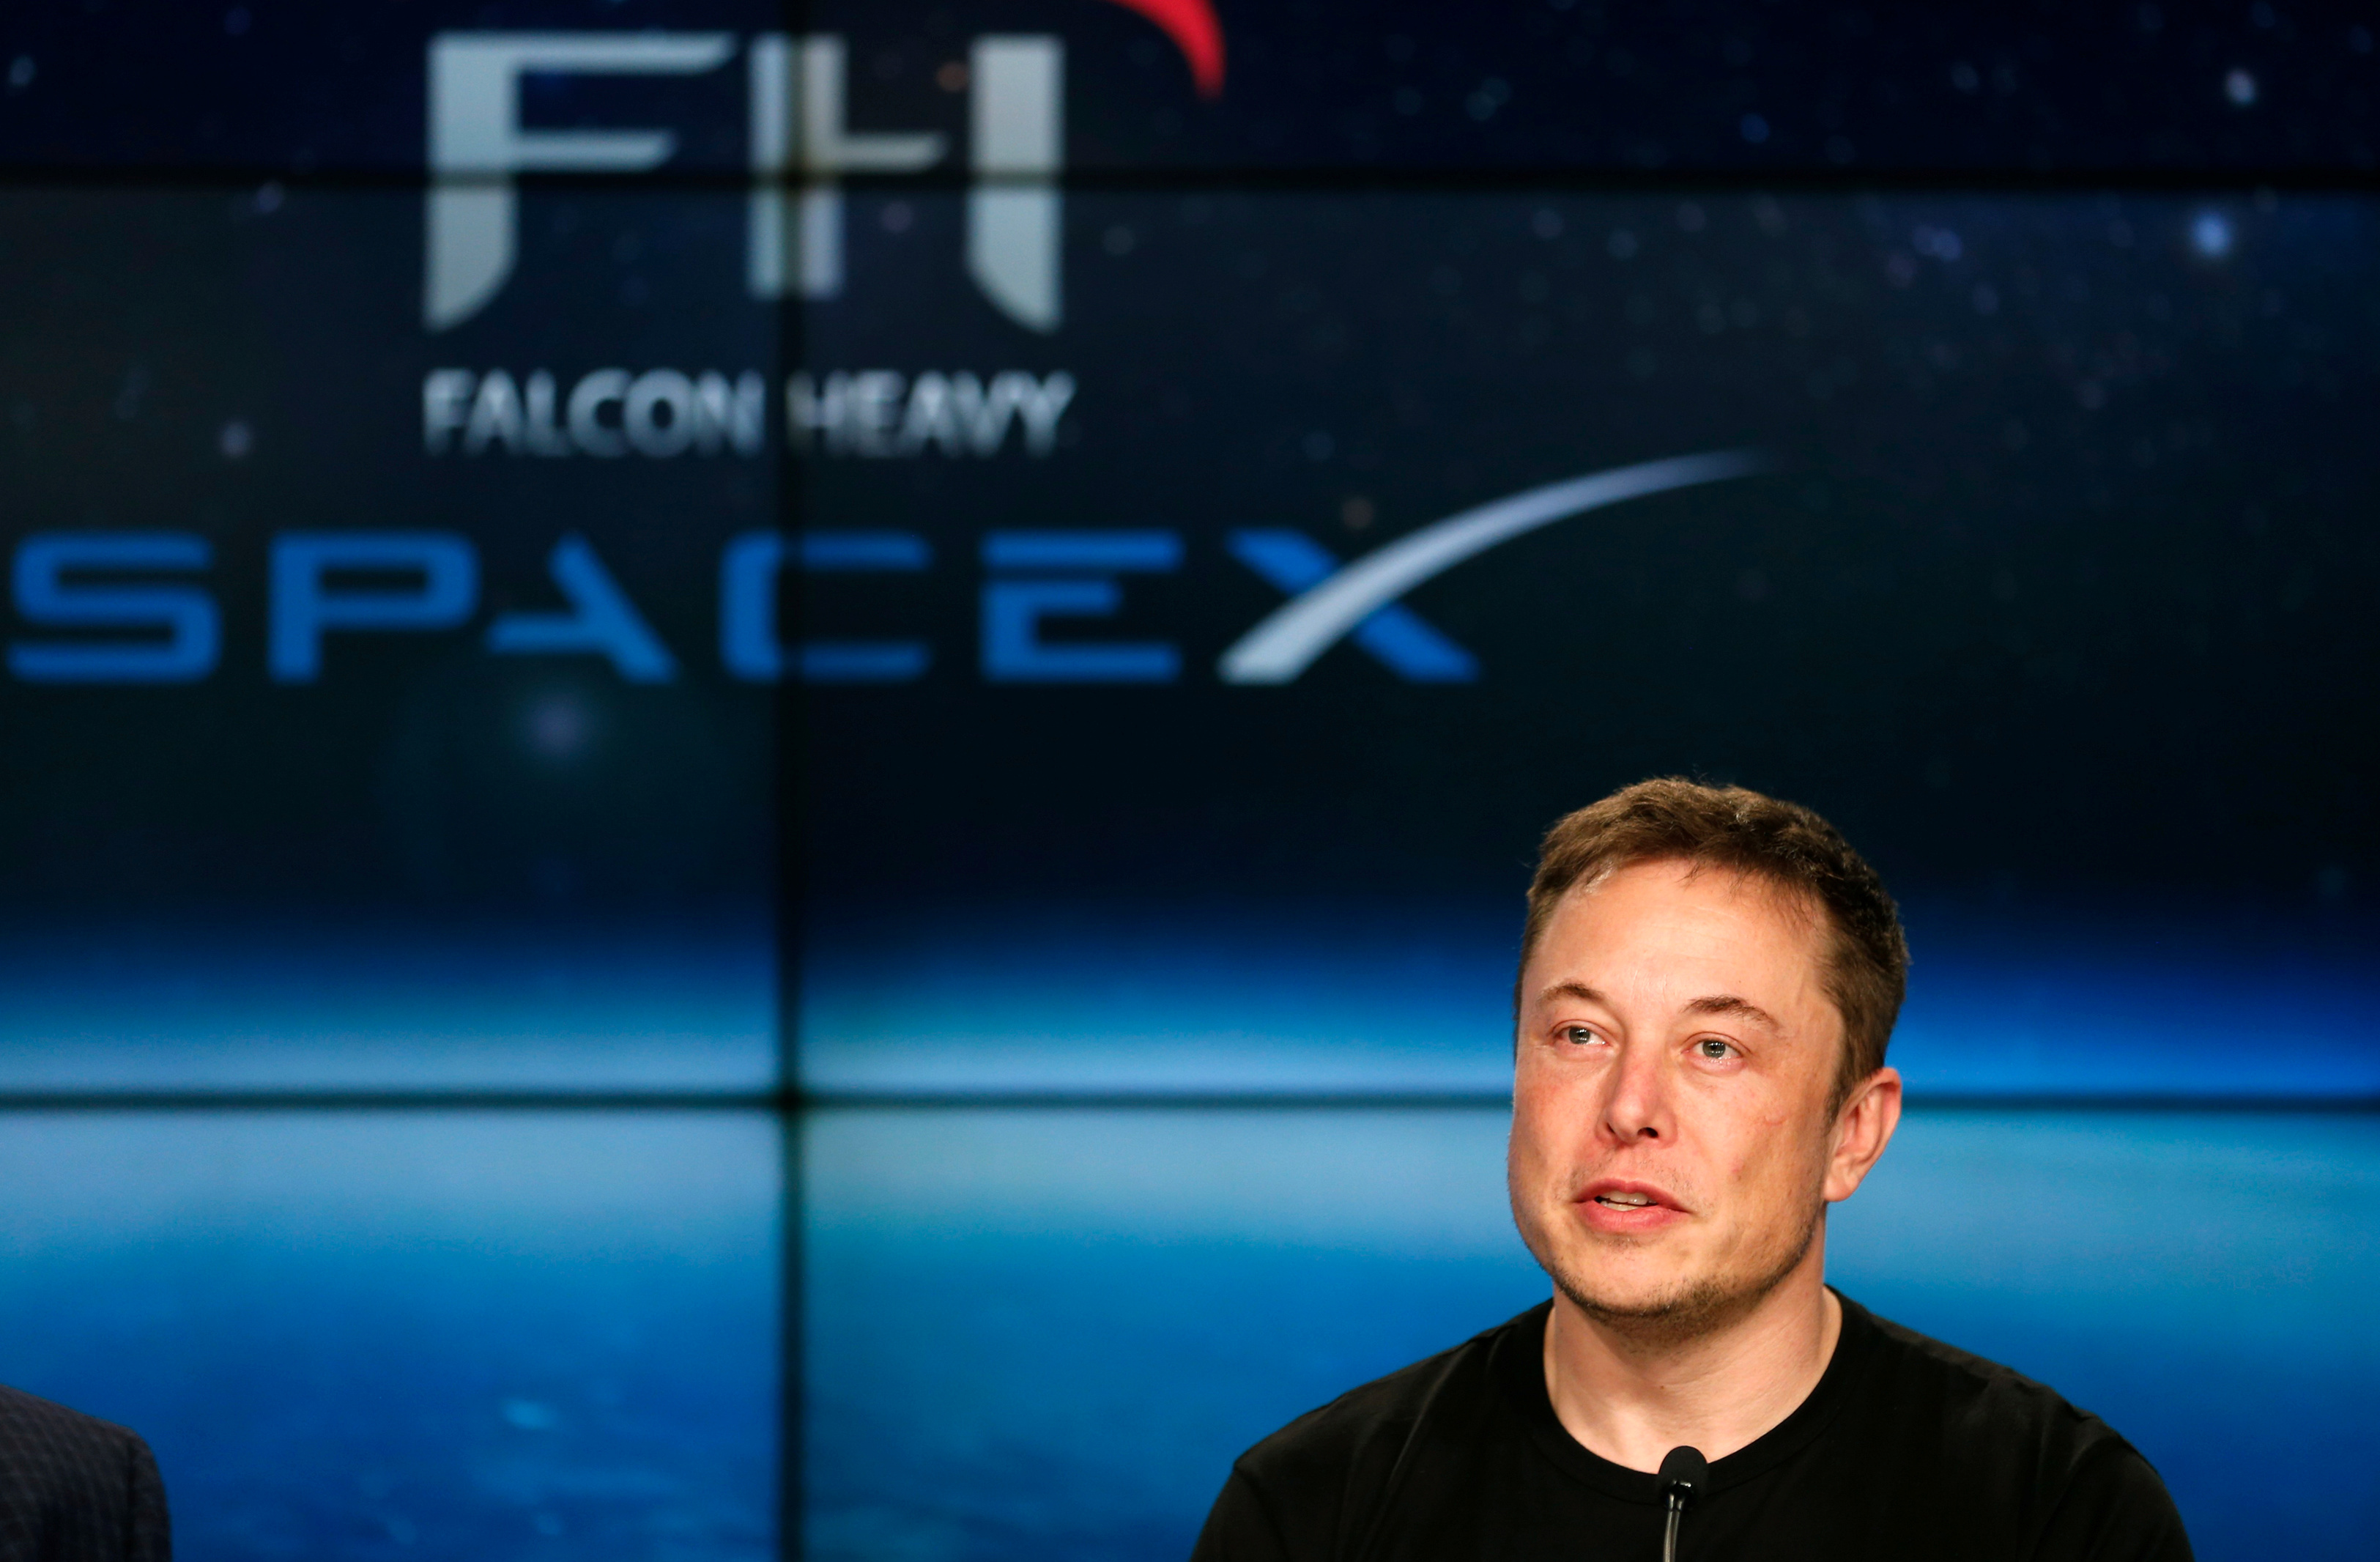 FILE PHOTO: SpaceX founder Musk speaks at a press conference following the first launch of a SpaceX Falcon Heavy rocket in Cape Canaveral